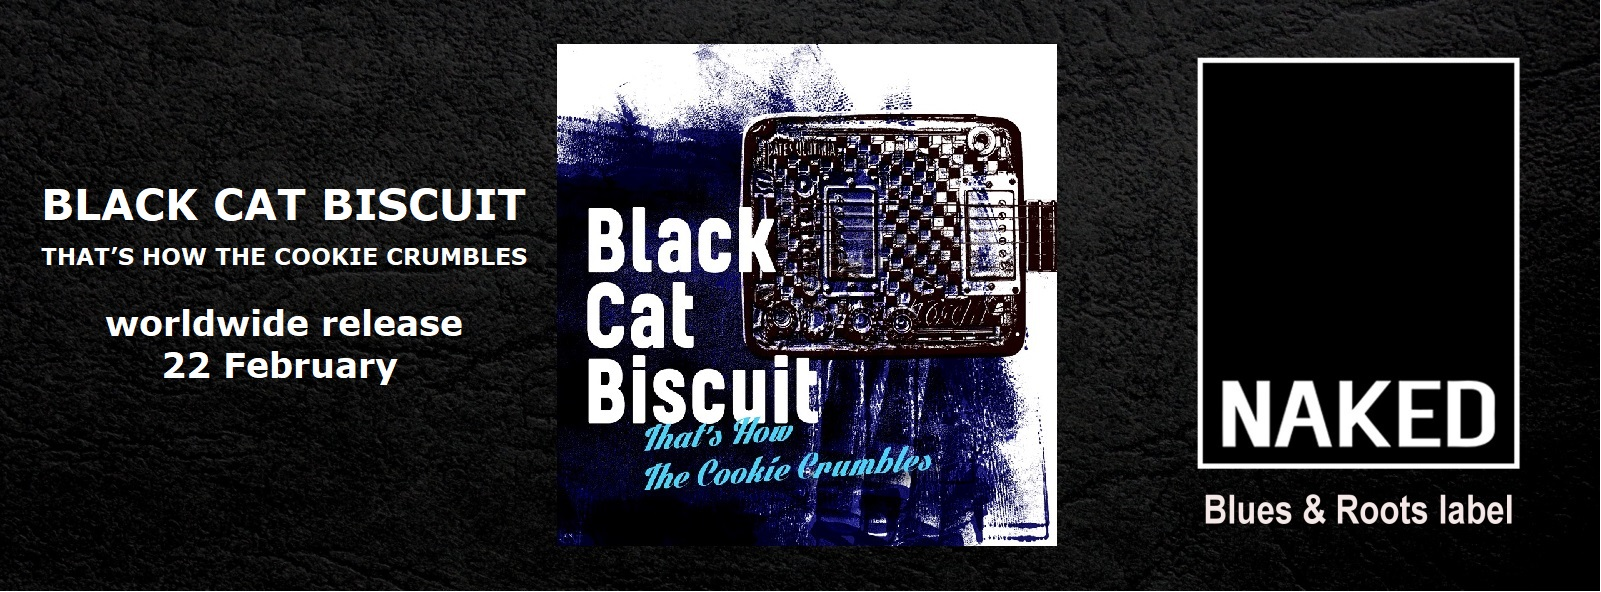 Black Cat Biscuit – That's How The Cookie Crumbles